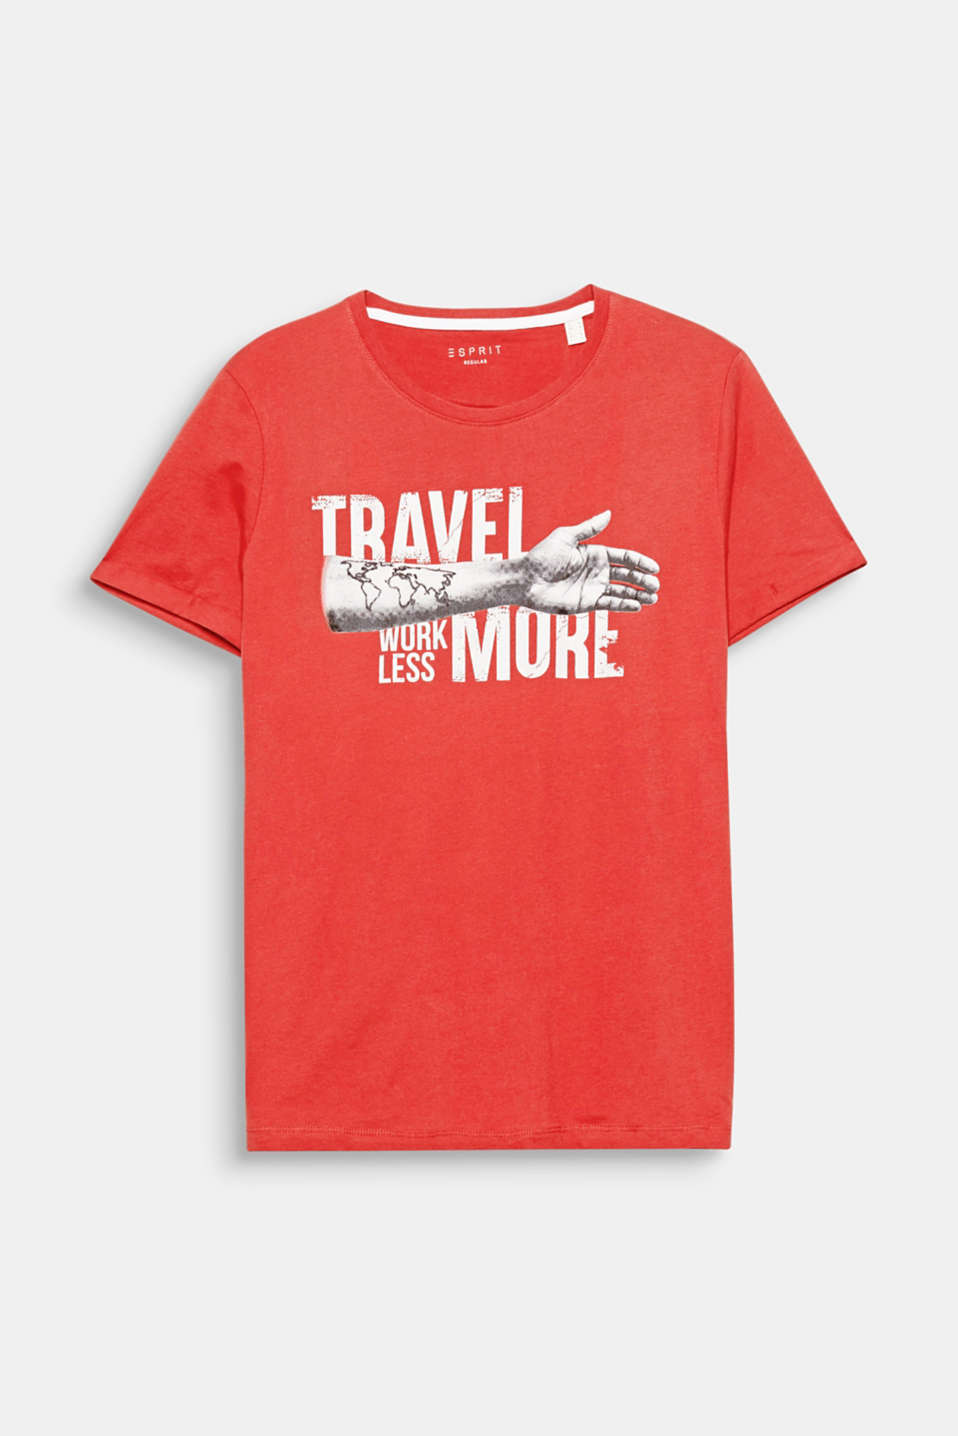 Travel more, work less! One statement, one print on this pure cotton jersey-shirt